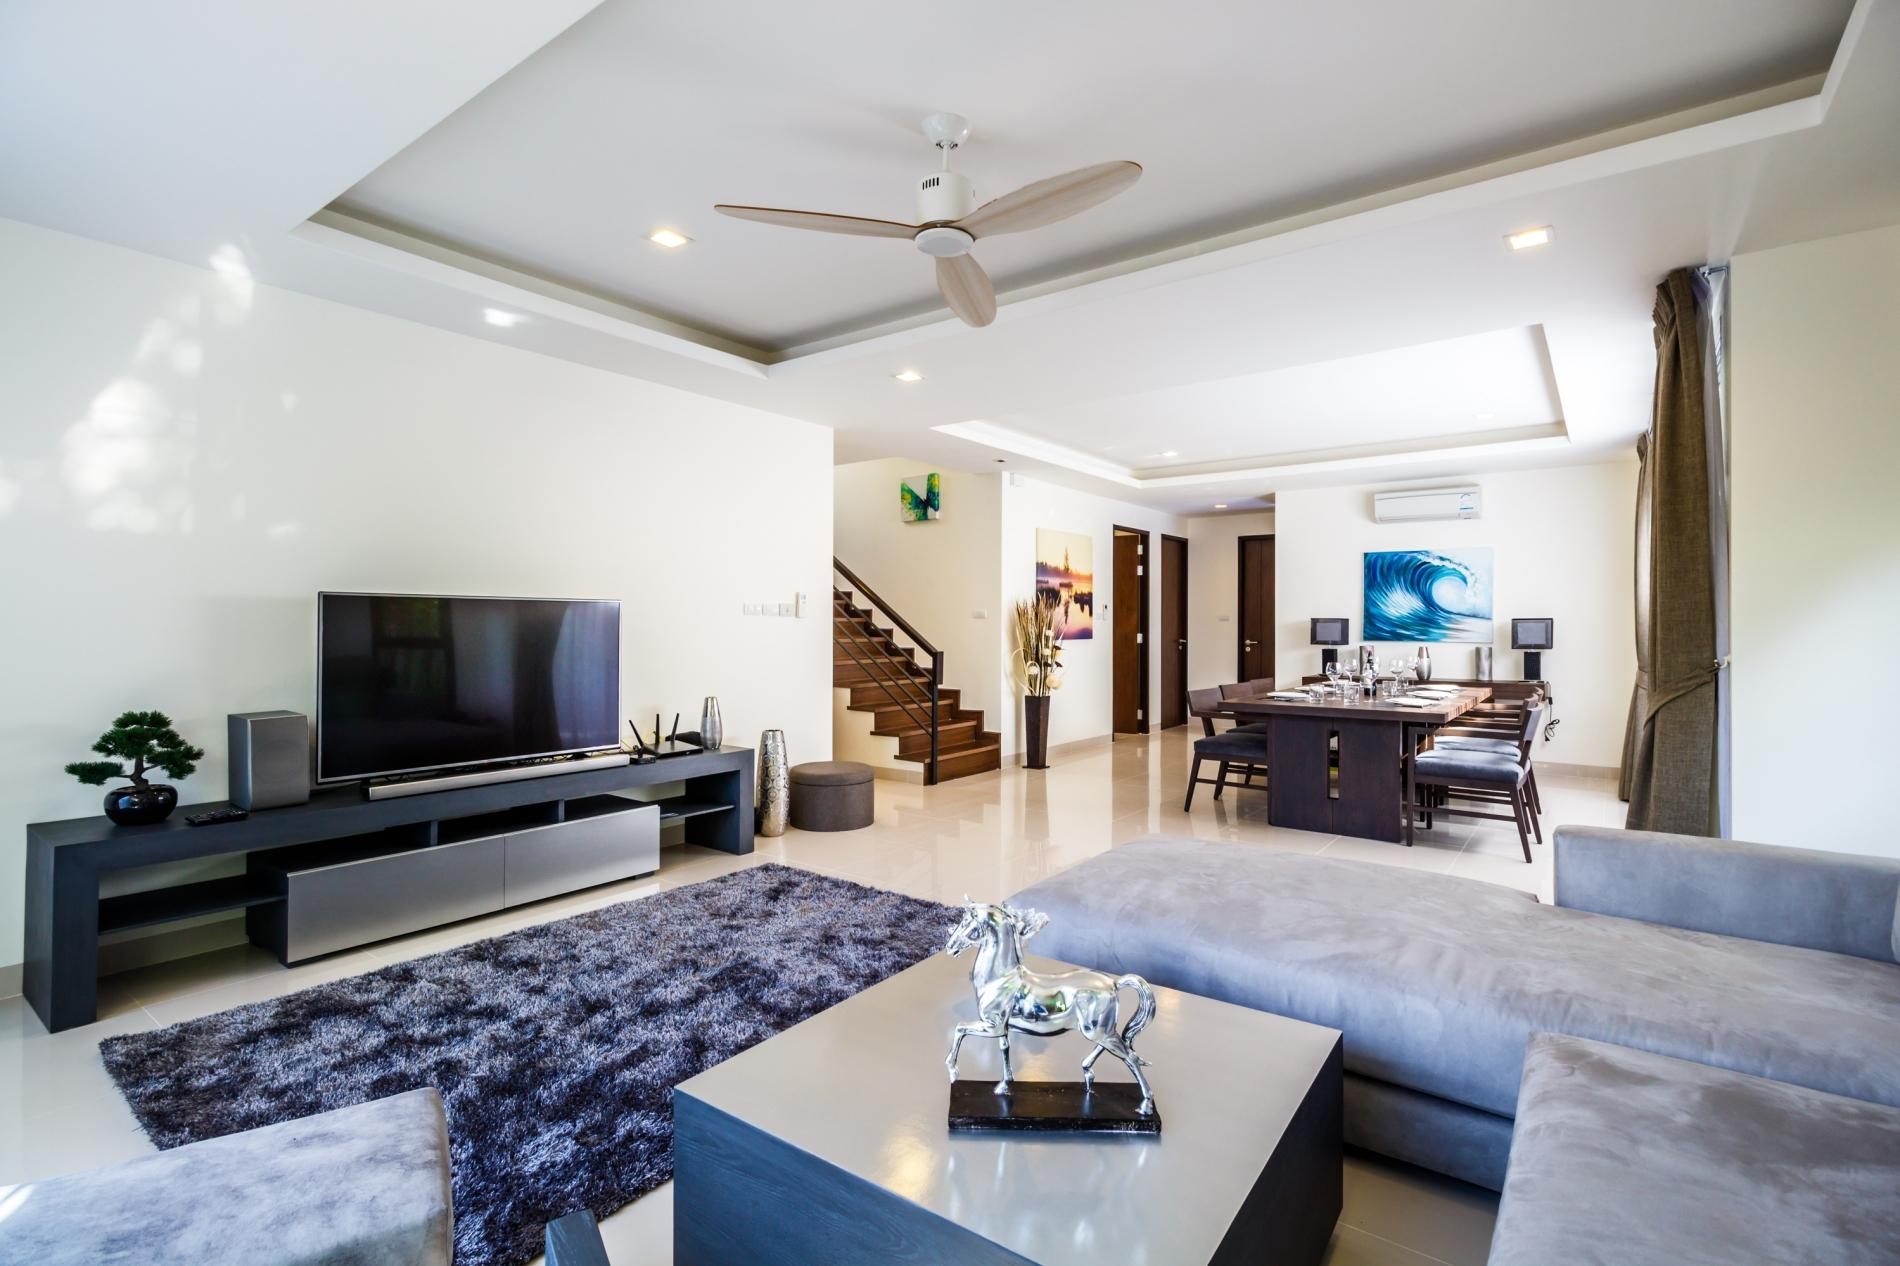 LP101 - Private rooftop pool villa in Laguna for 9 people, near restaurants and shops photo 16516903